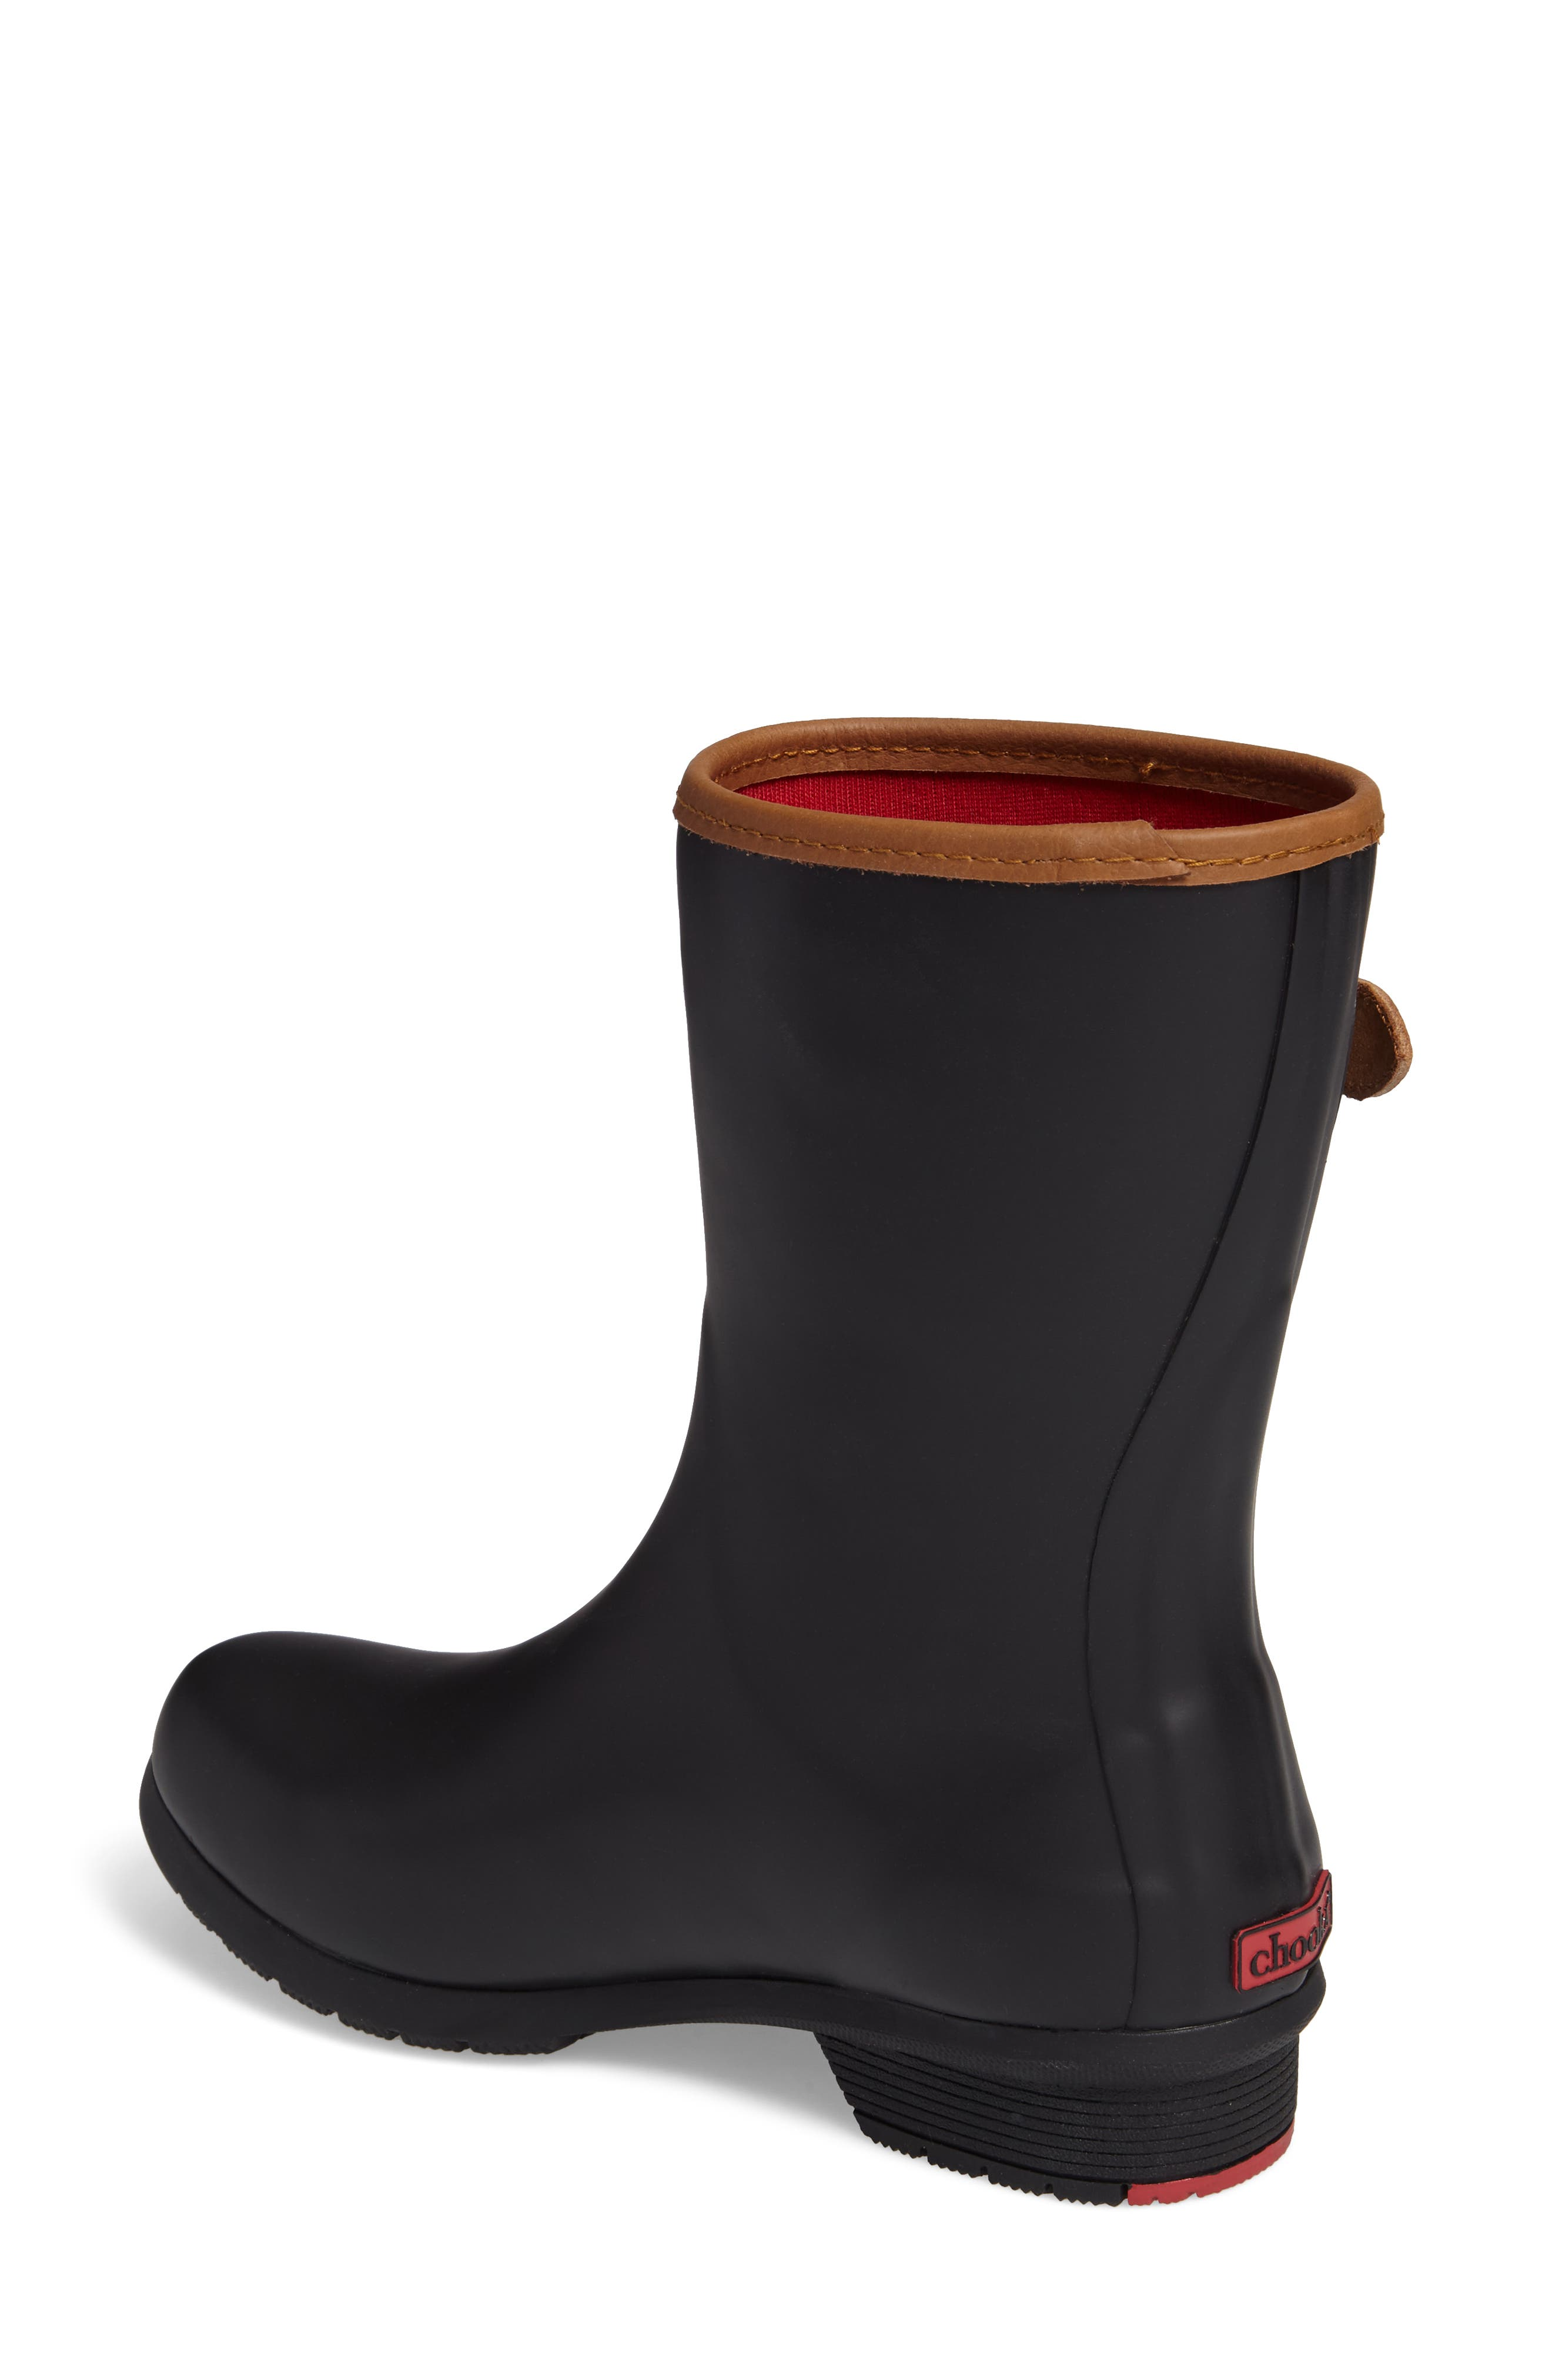 City Solid Mid Height Rain Boot,                             Alternate thumbnail 2, color,                             Black